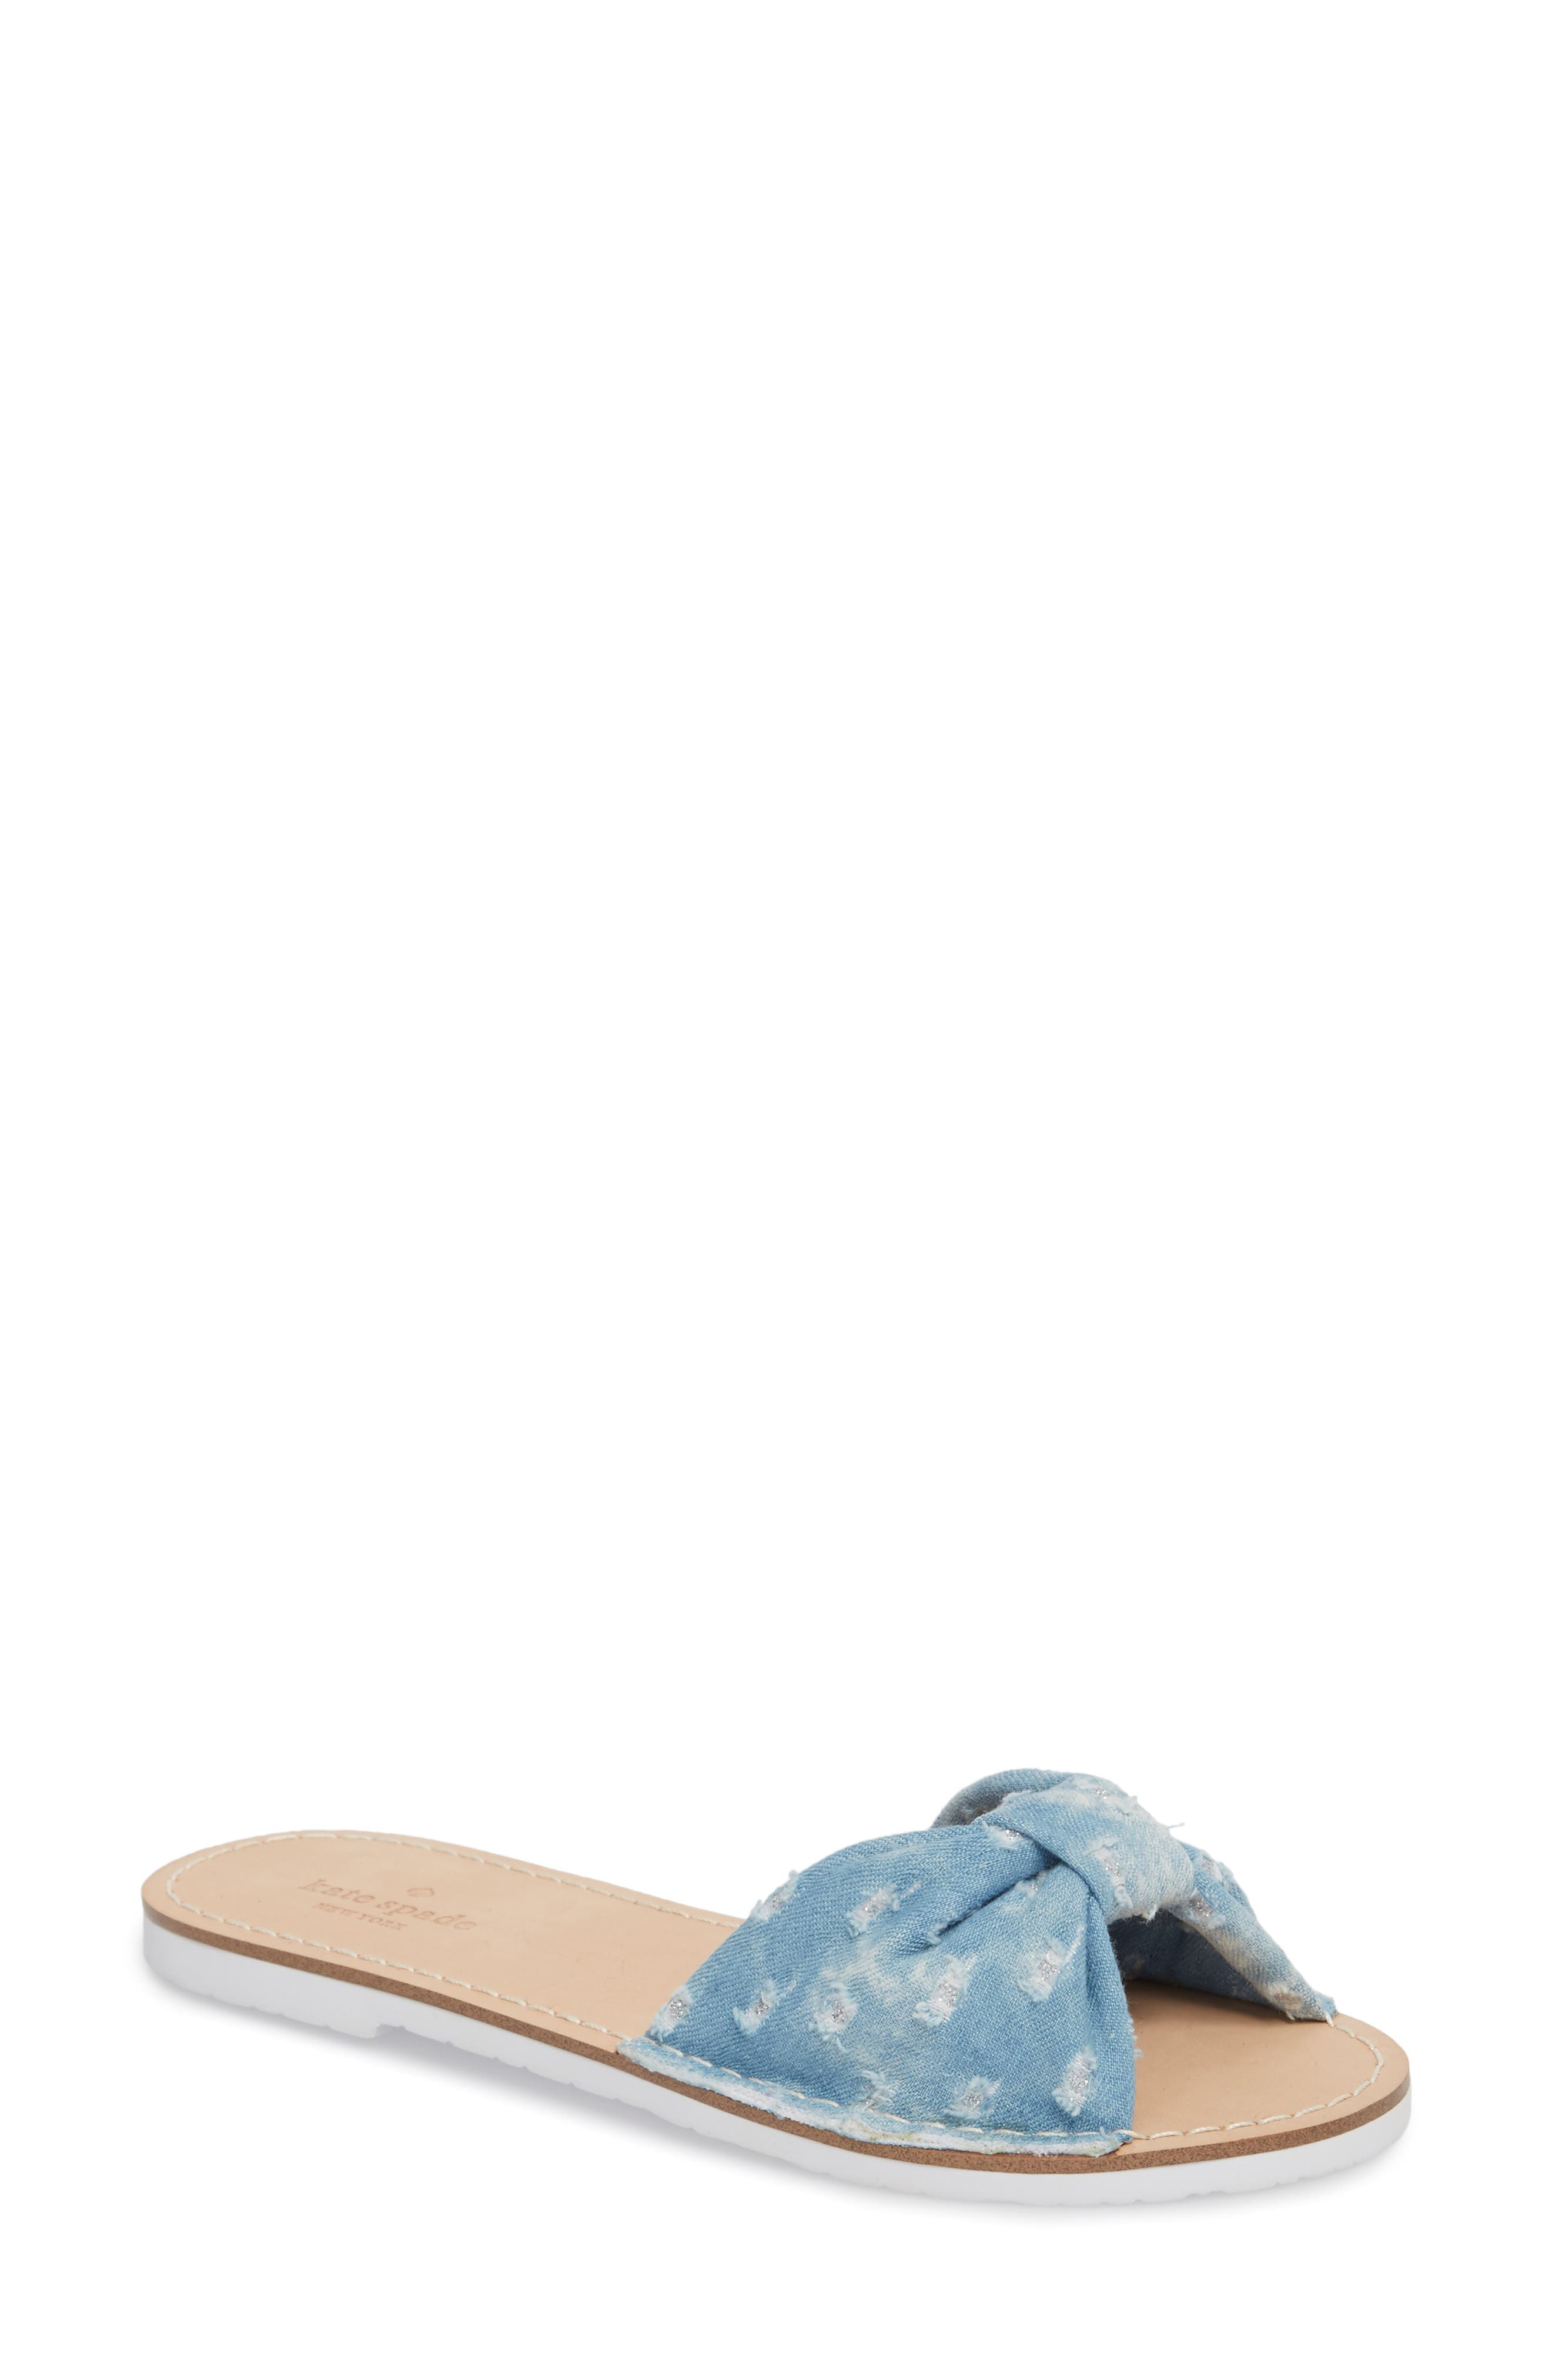 Main Image - kate spade new york indi slide sandal (Women)